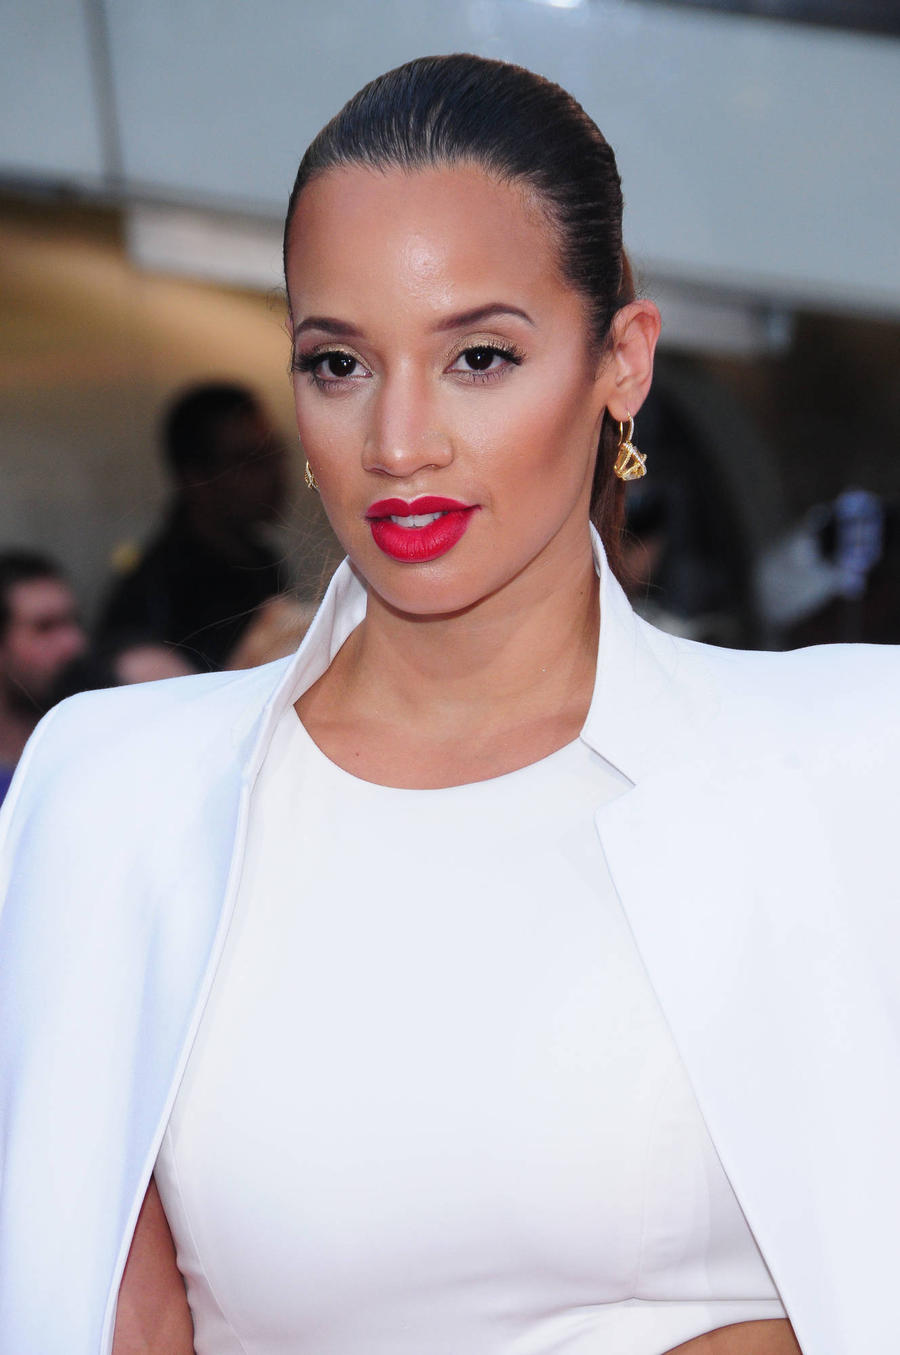 Dascha Polanco Moving Out To Avoid Teenager Accusing Her Of Assault - Report